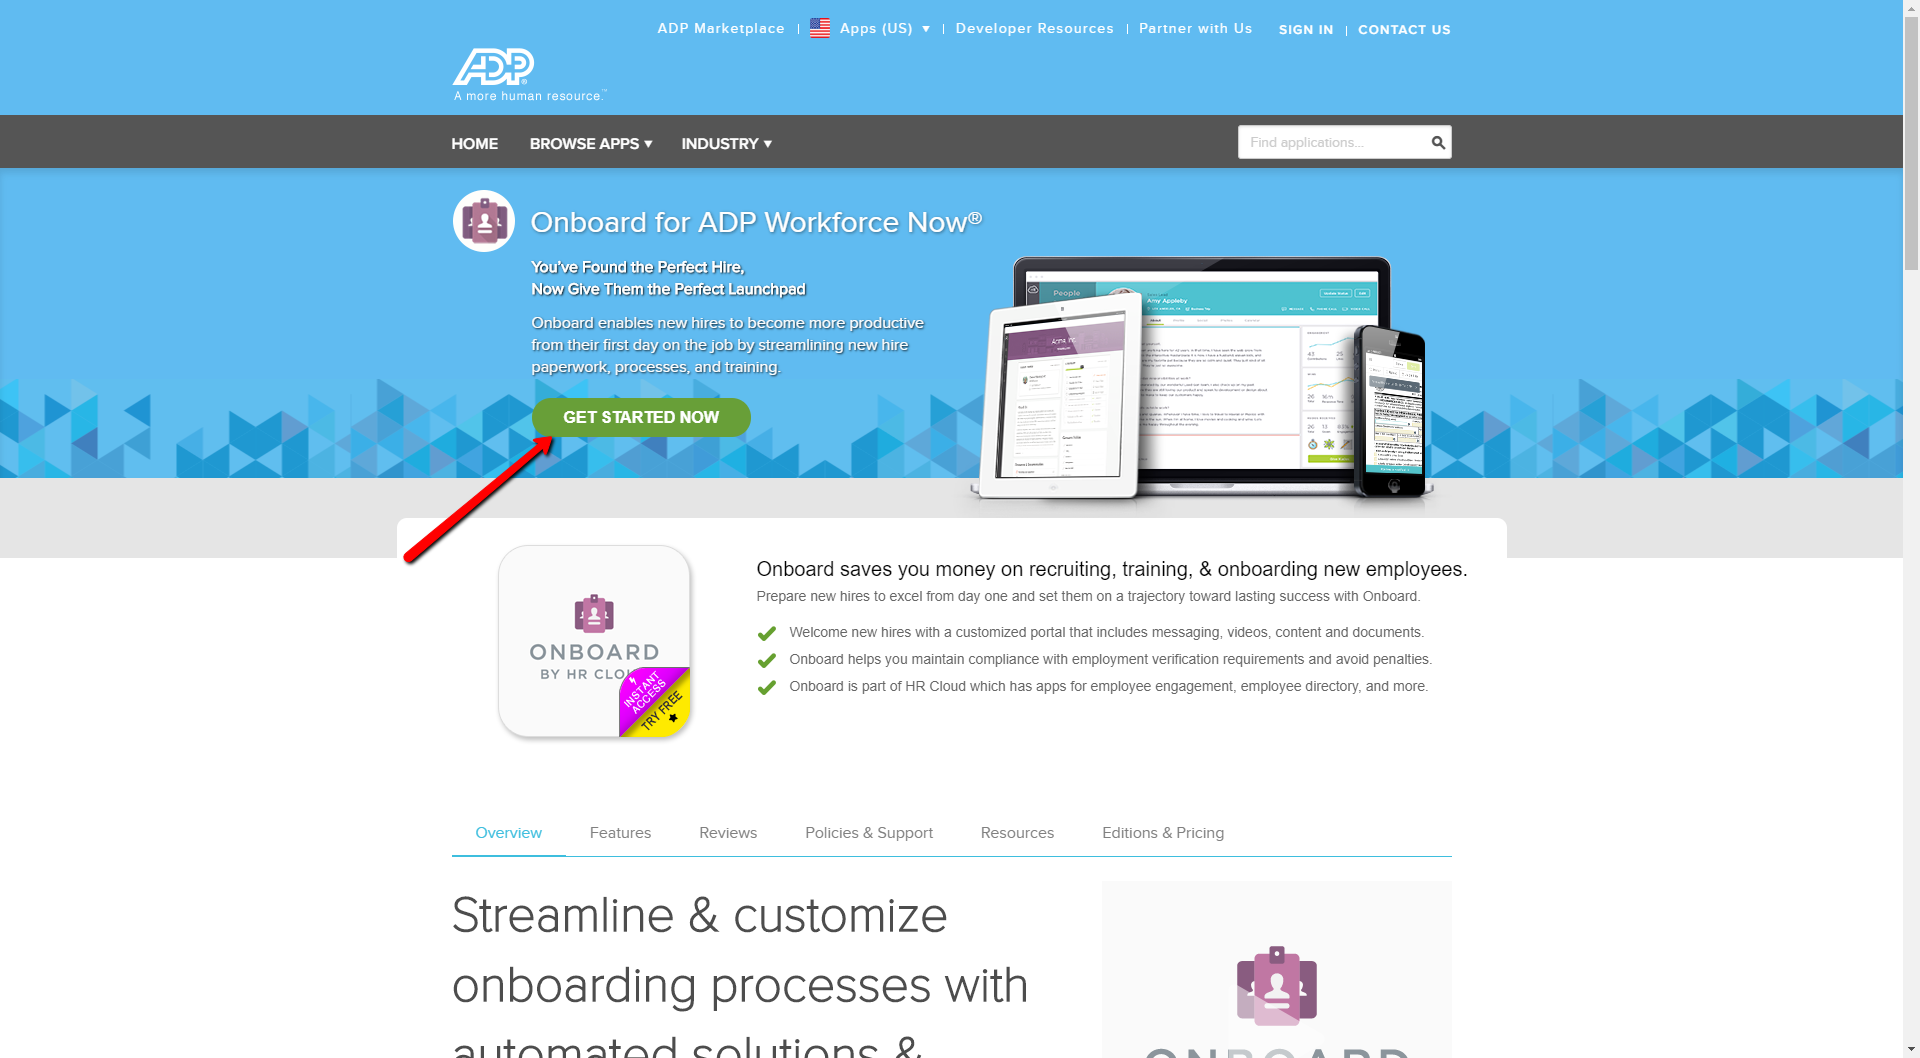 How to purchase HR Cloud for ADP?